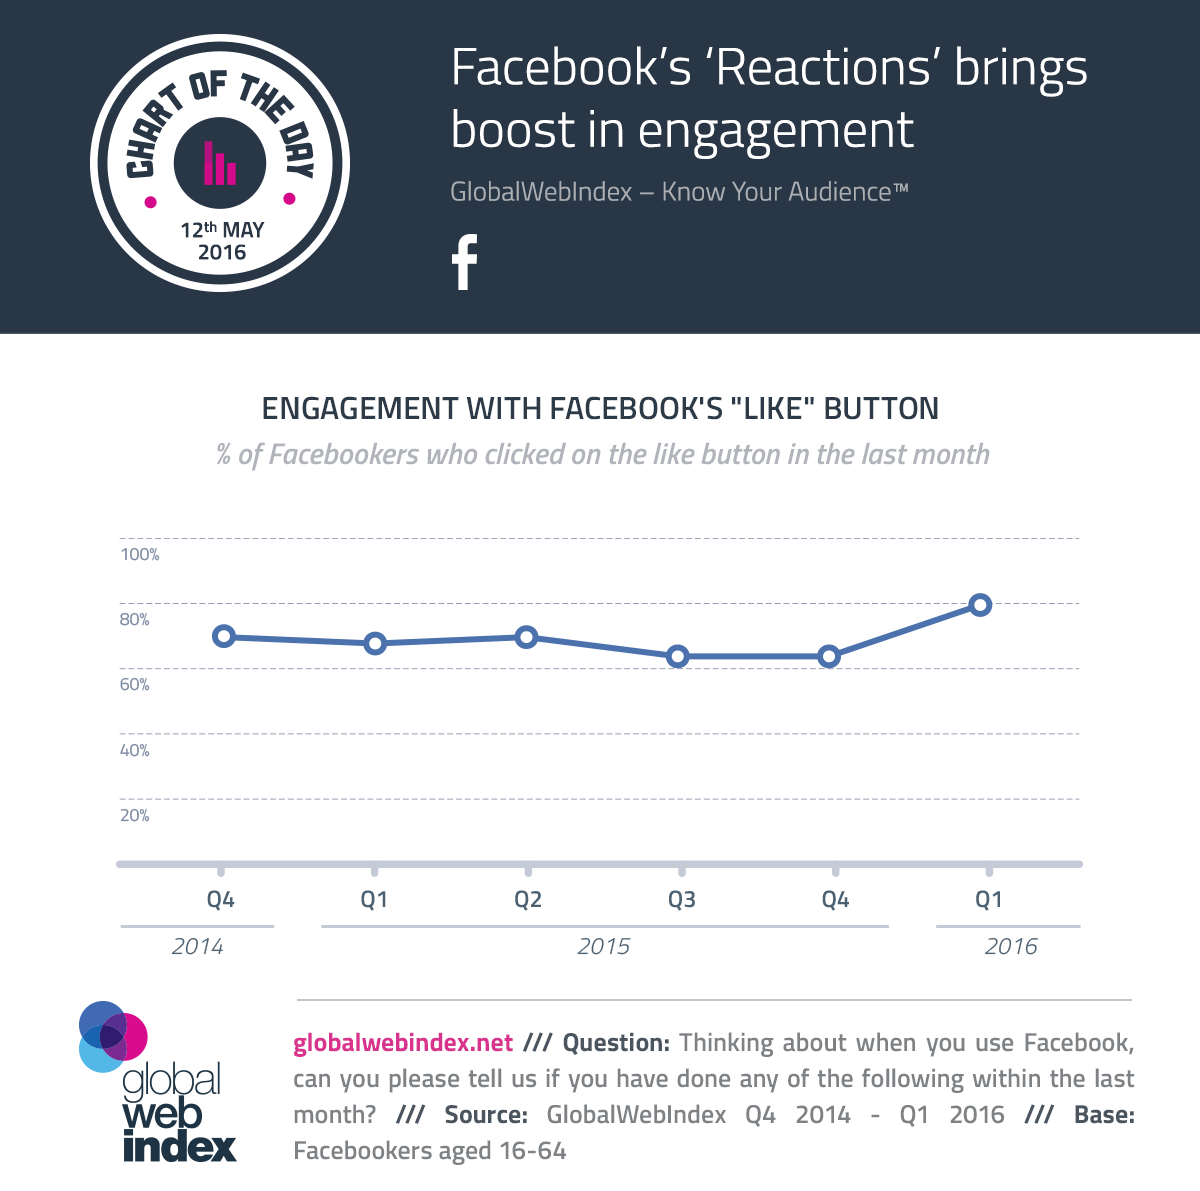 Facebook's 'Reactions' brings boost in engagement